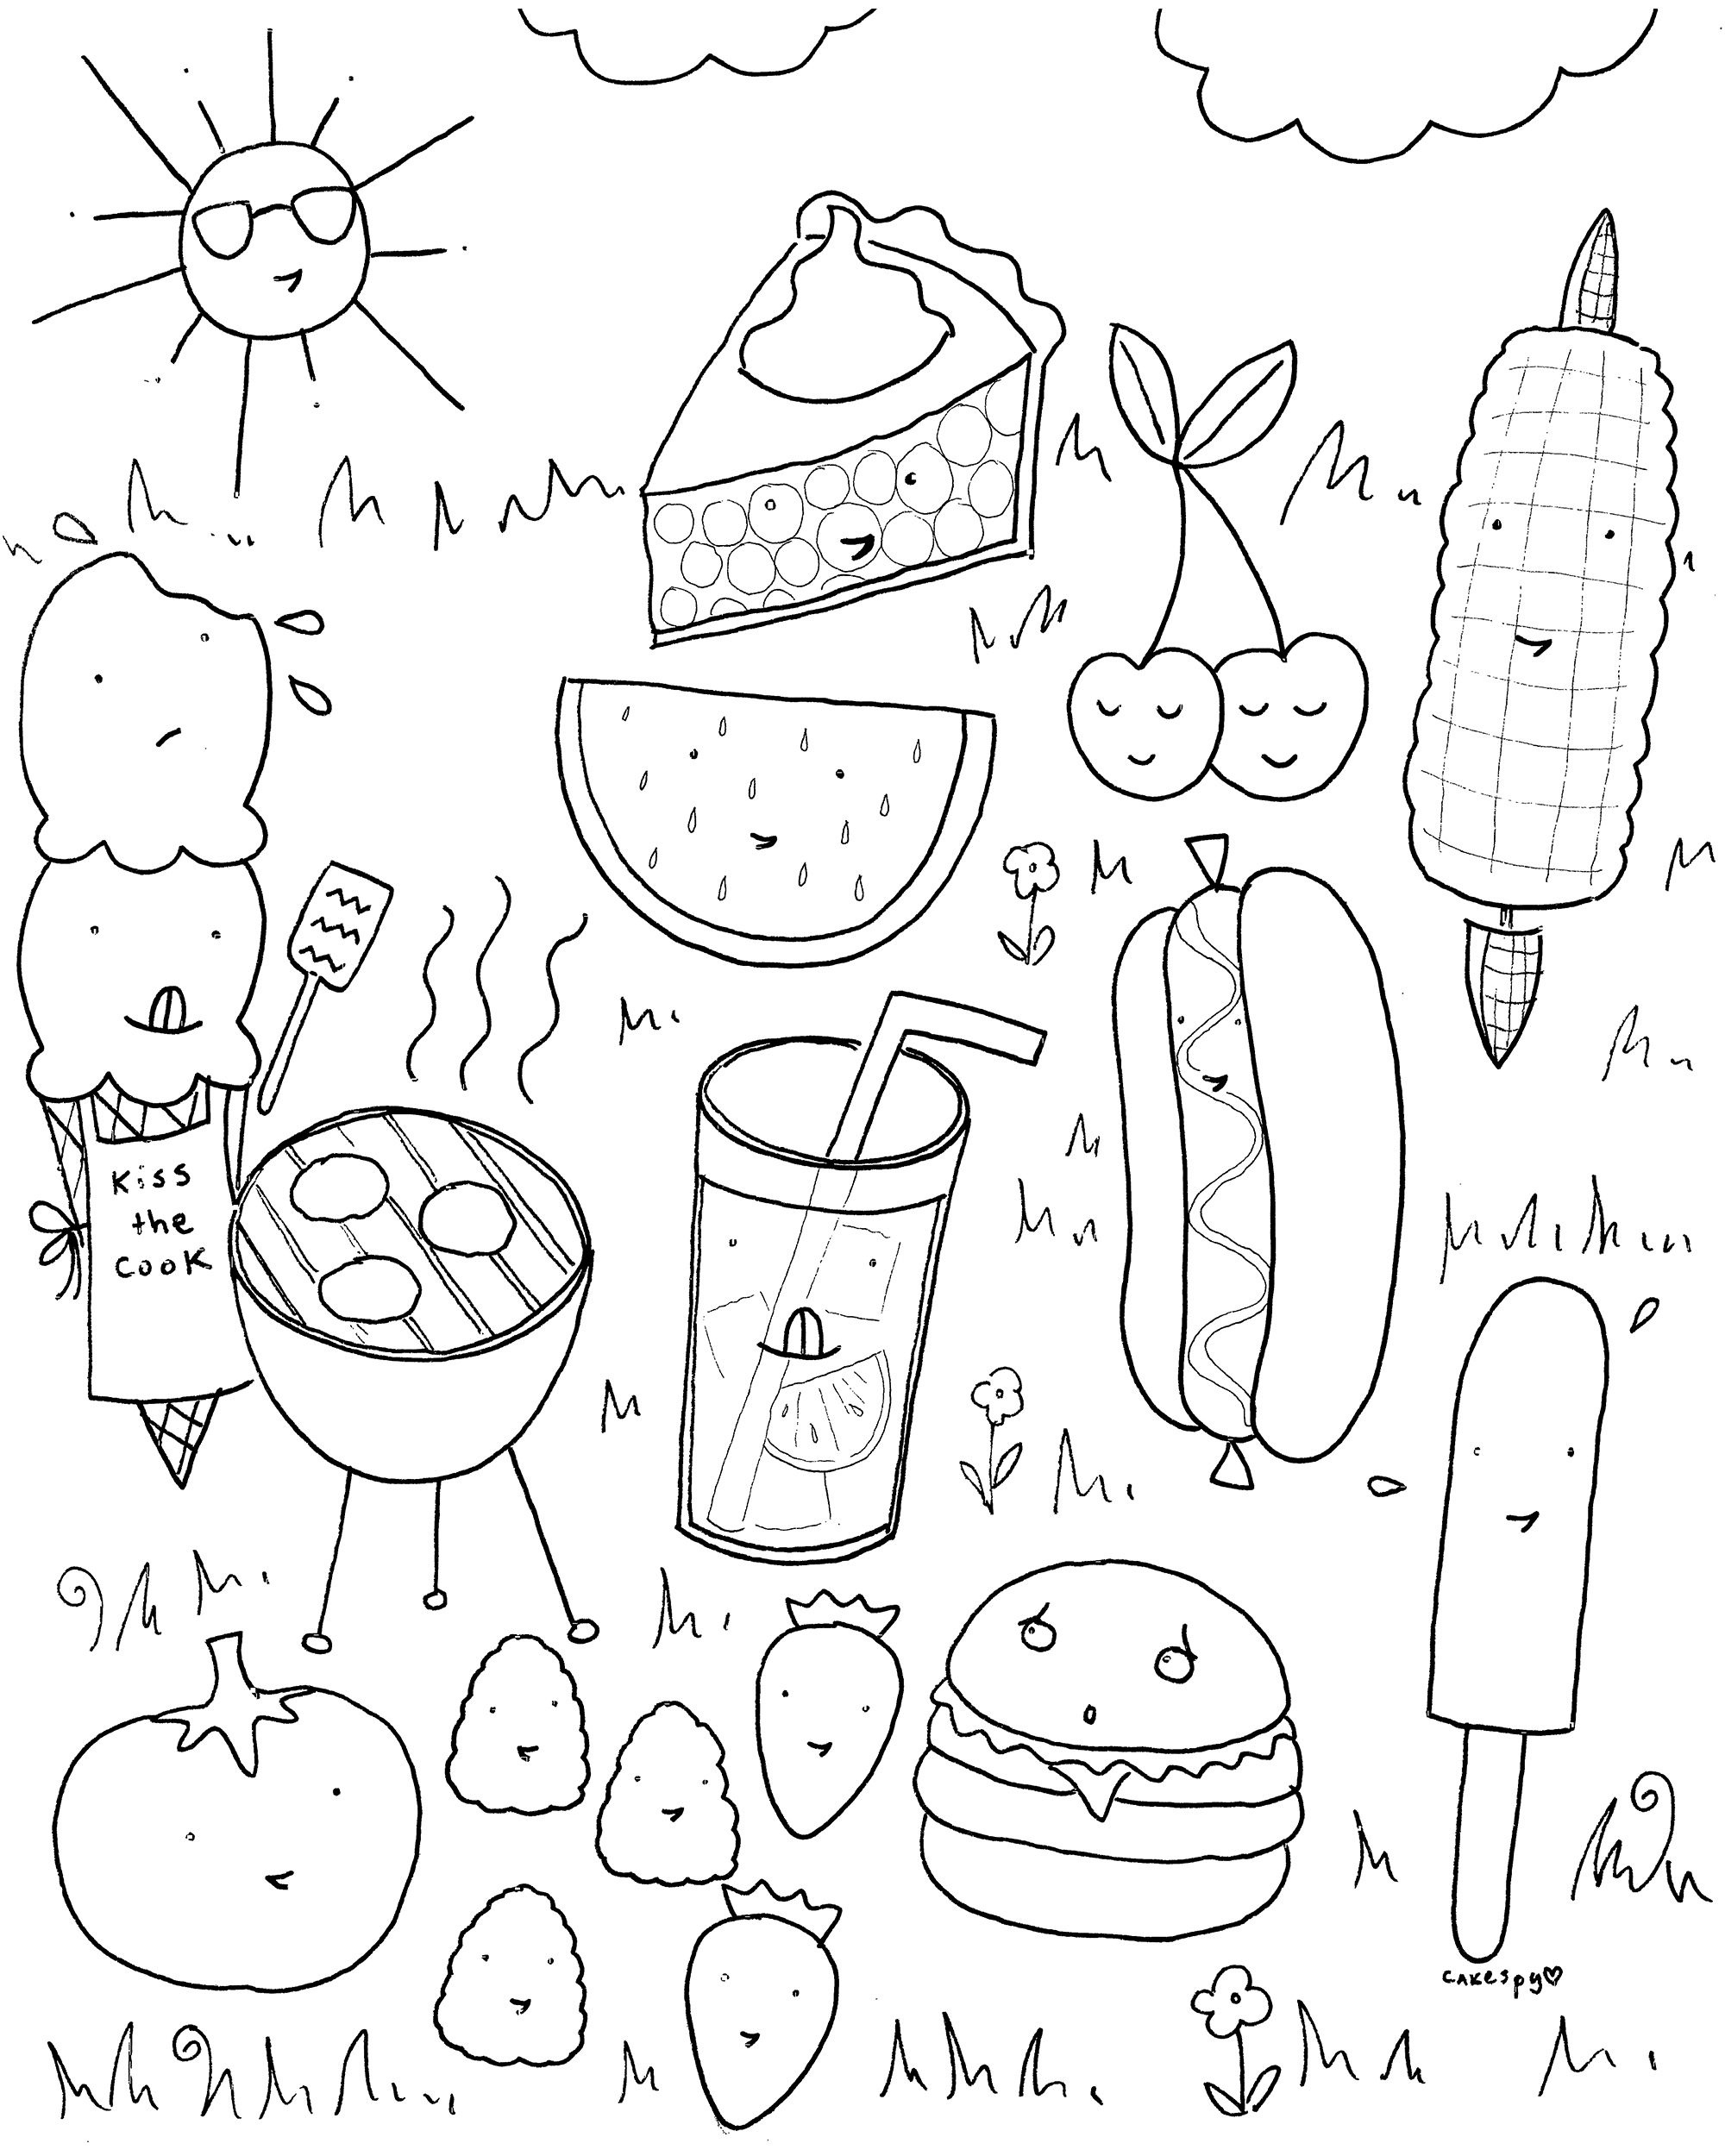 Free Downloadable Summer Fun Coloring Book Pages | Ideen Für Kinder - Free Printable Summer Coloring Pages For Adults